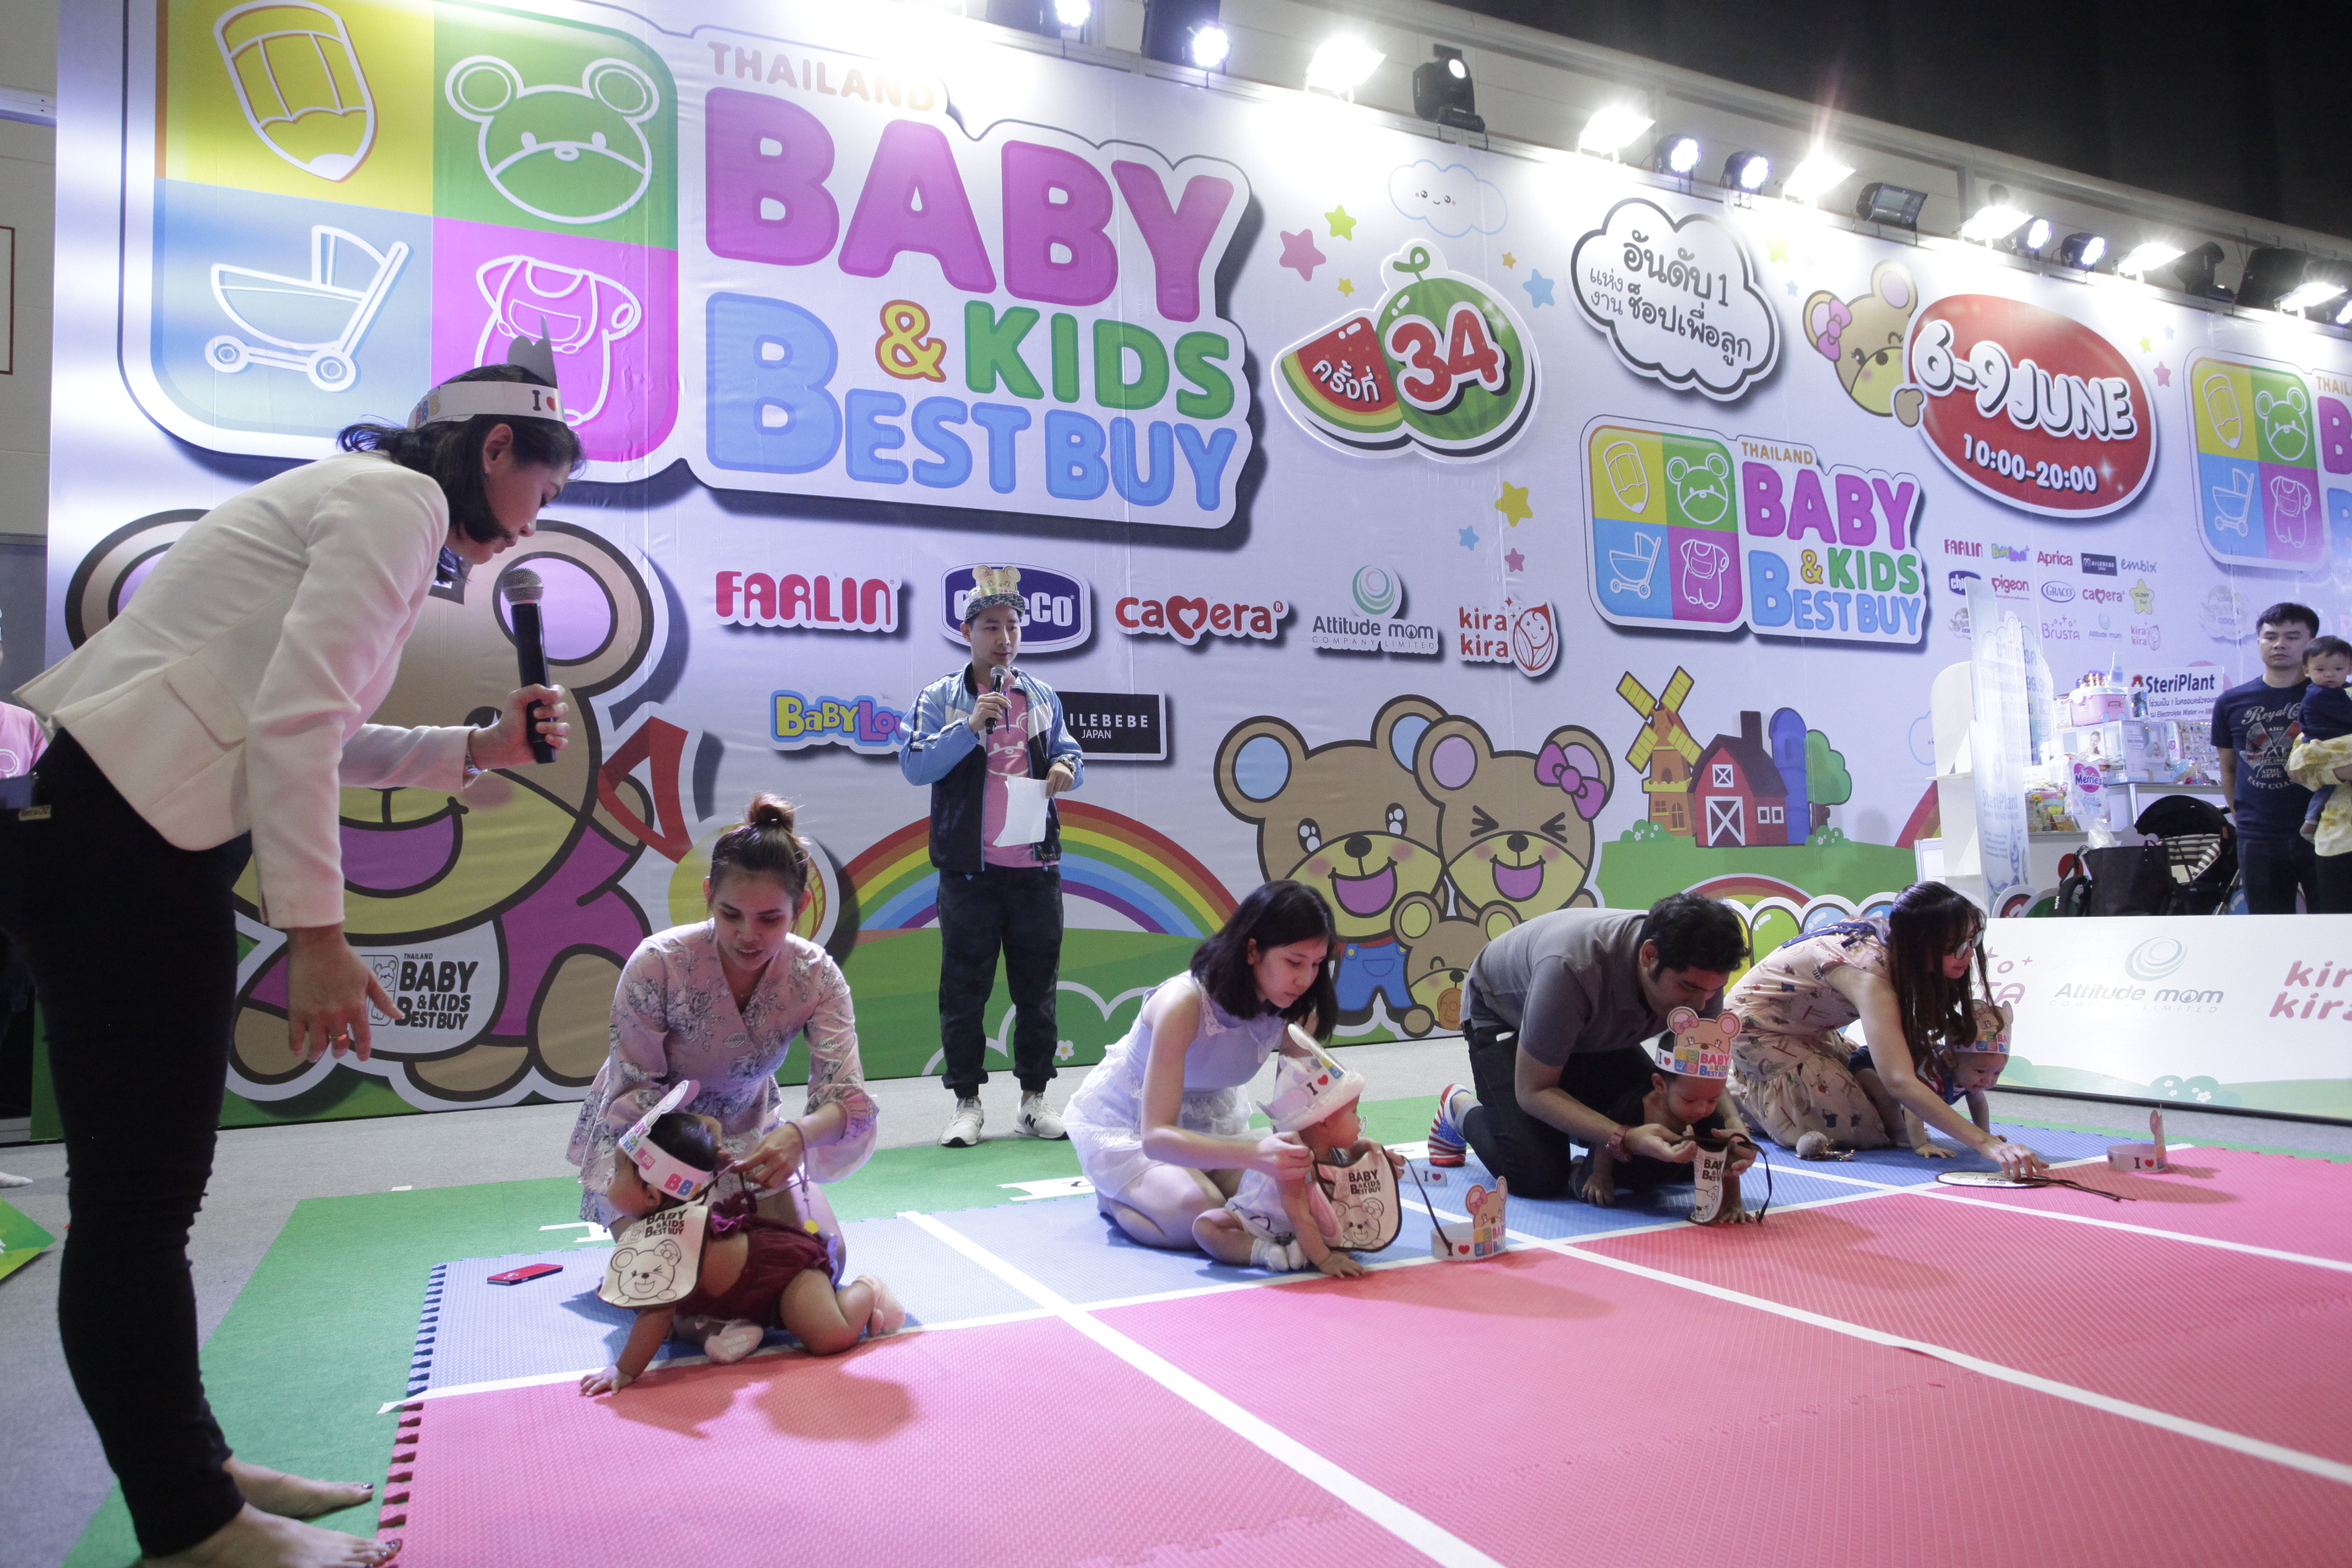 Thailand Baby & Kids Best Buy ครั้งที่ 34